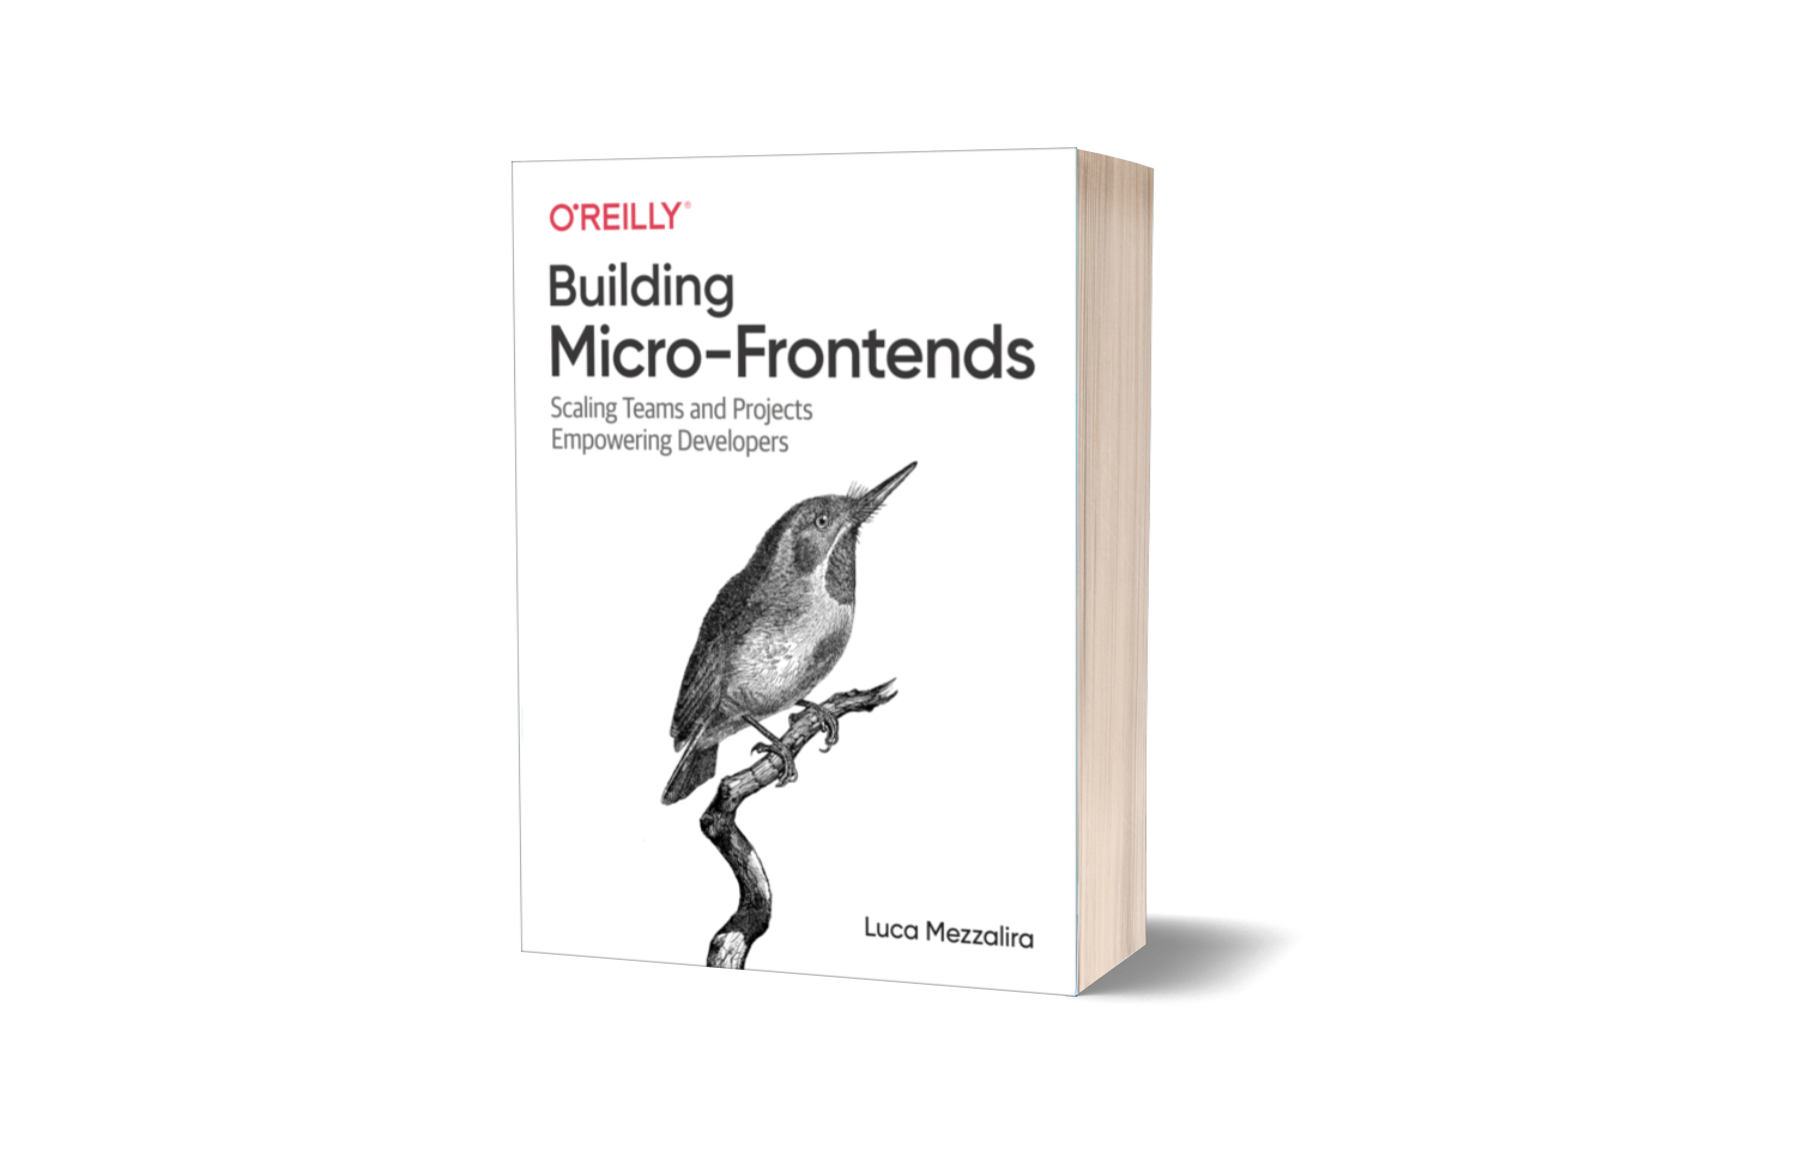 Building Micro-Frontends, the book